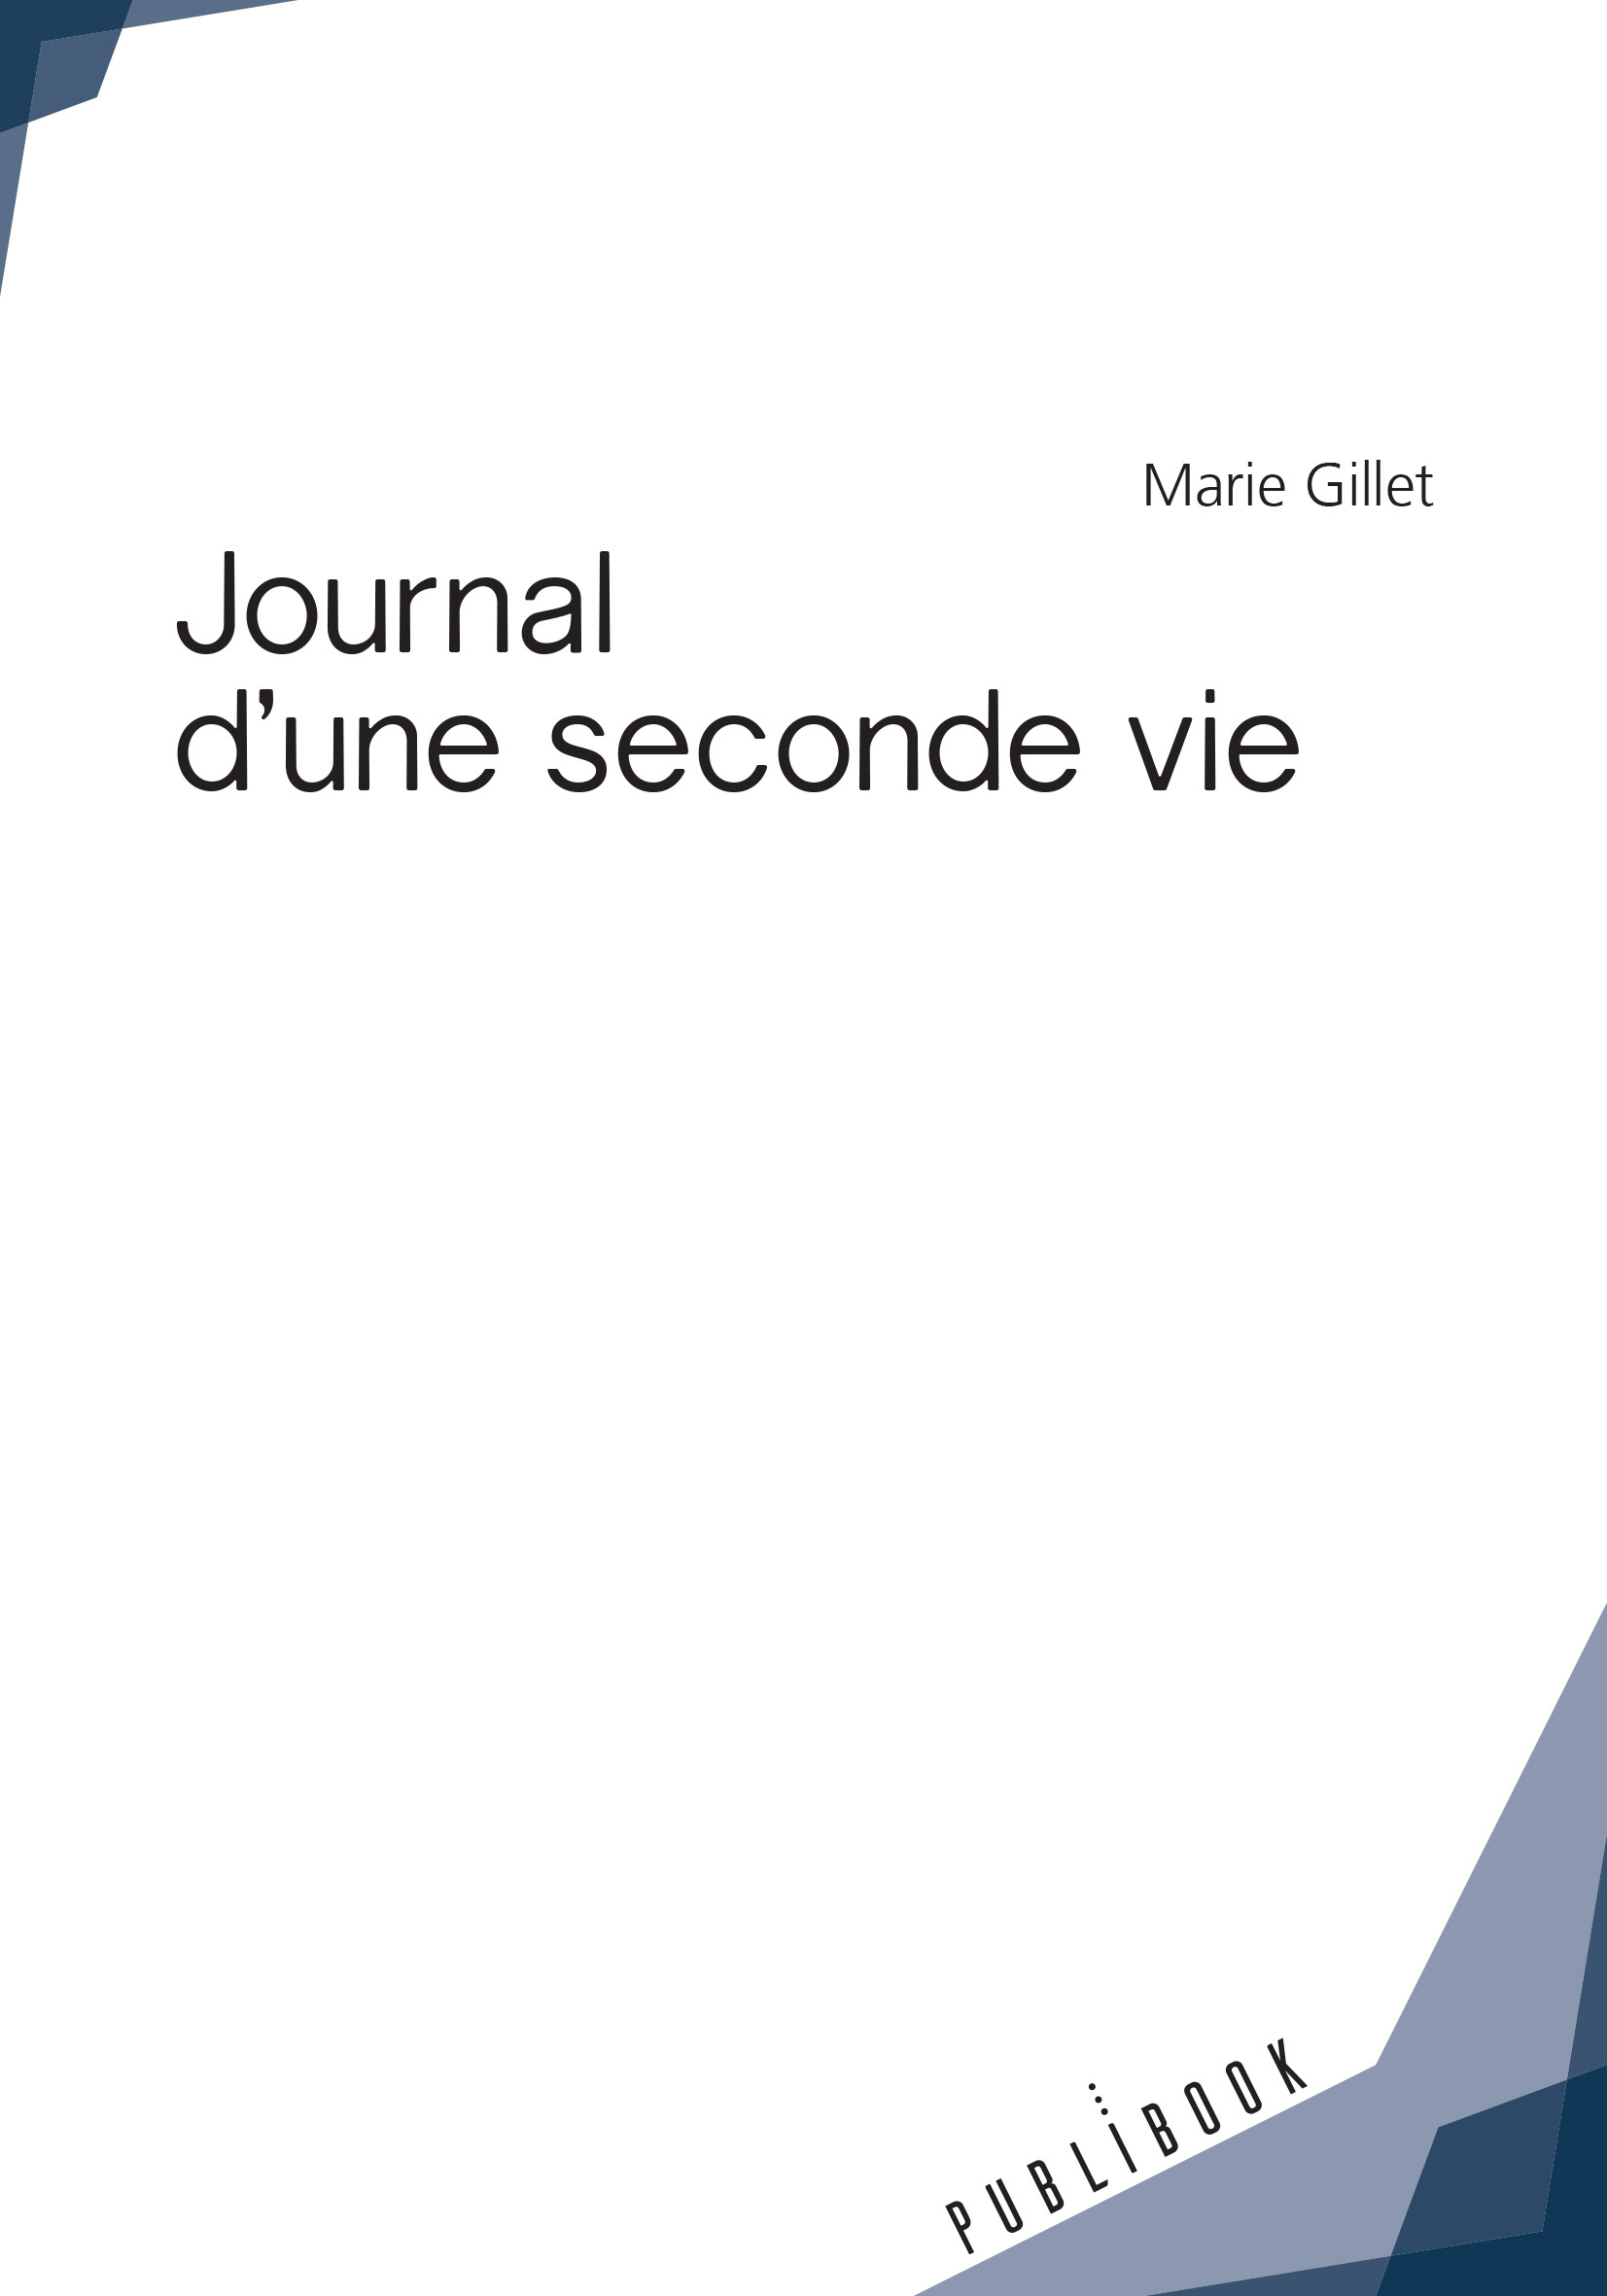 JOURNAL D'UNE SECONDE VIE